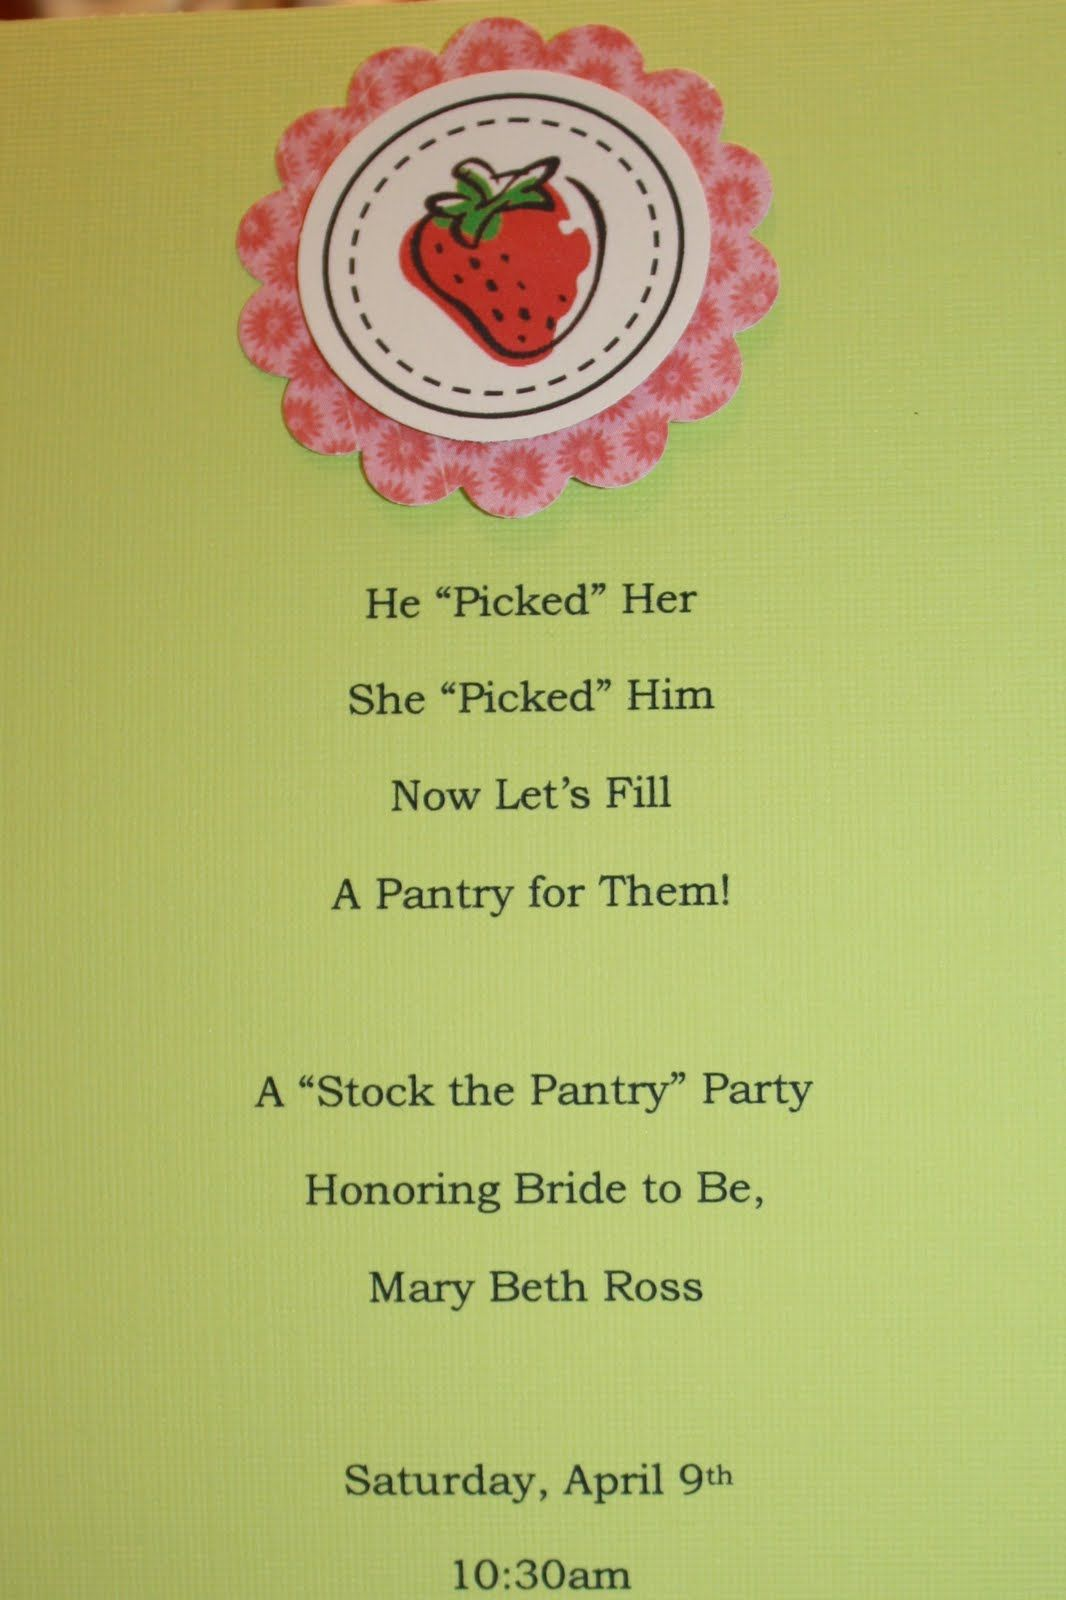 recipe themed bridal shower invitation wording%0A stock the pantry poem for bridel showers   Hand Picked